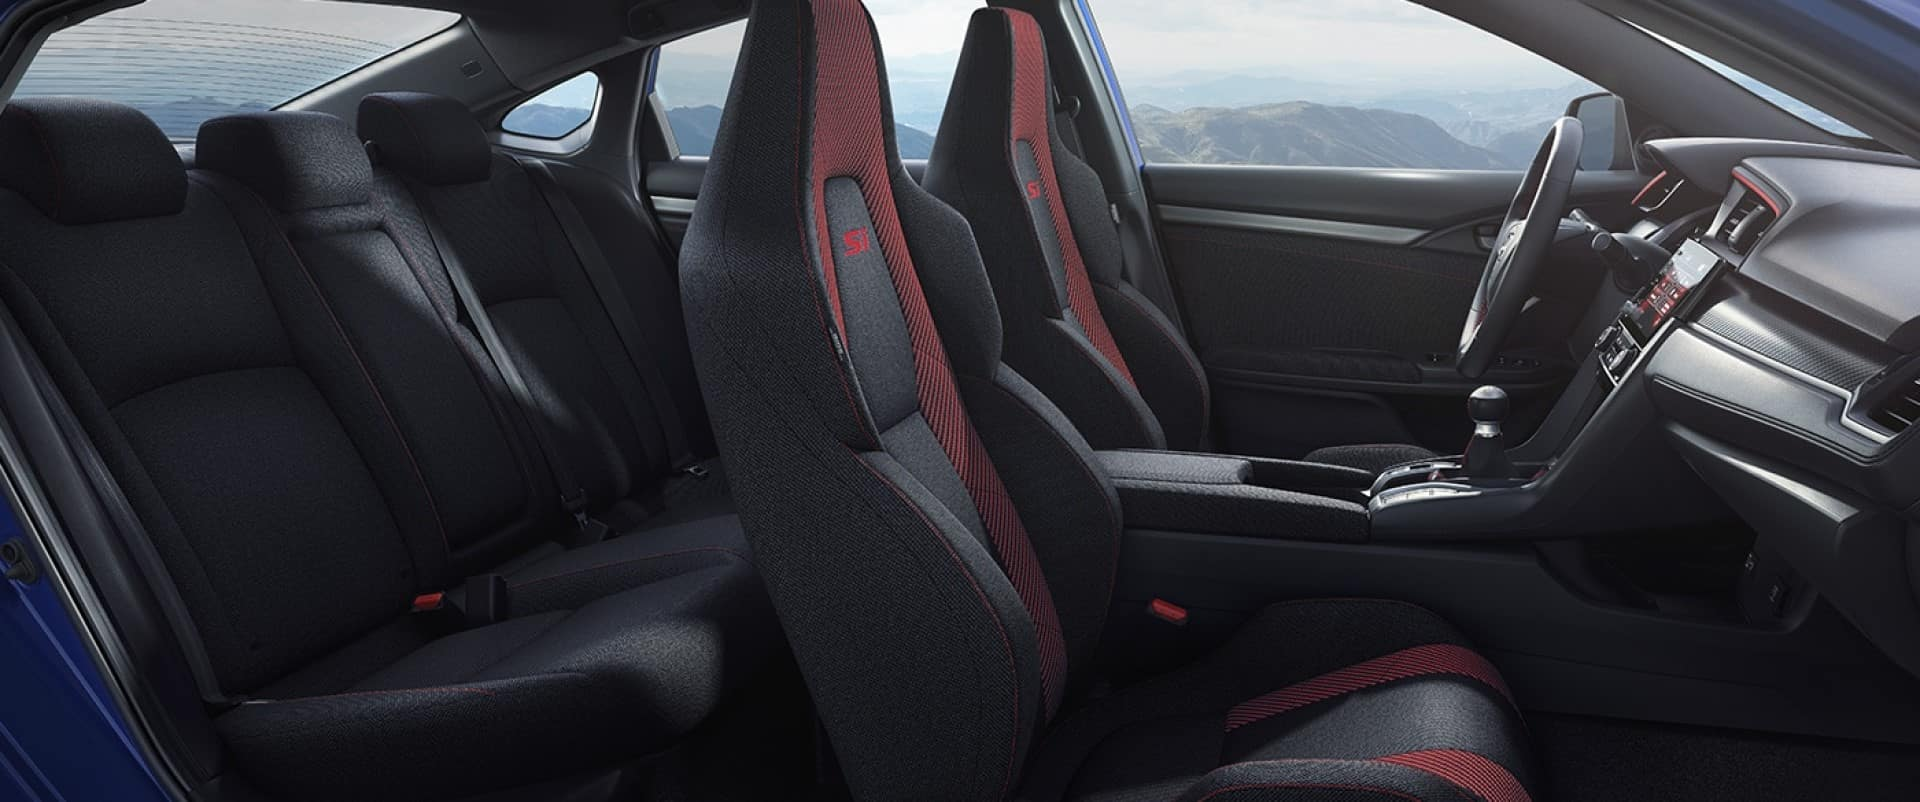 Honda_Civic_Si_Sedan_Interior_Cabin